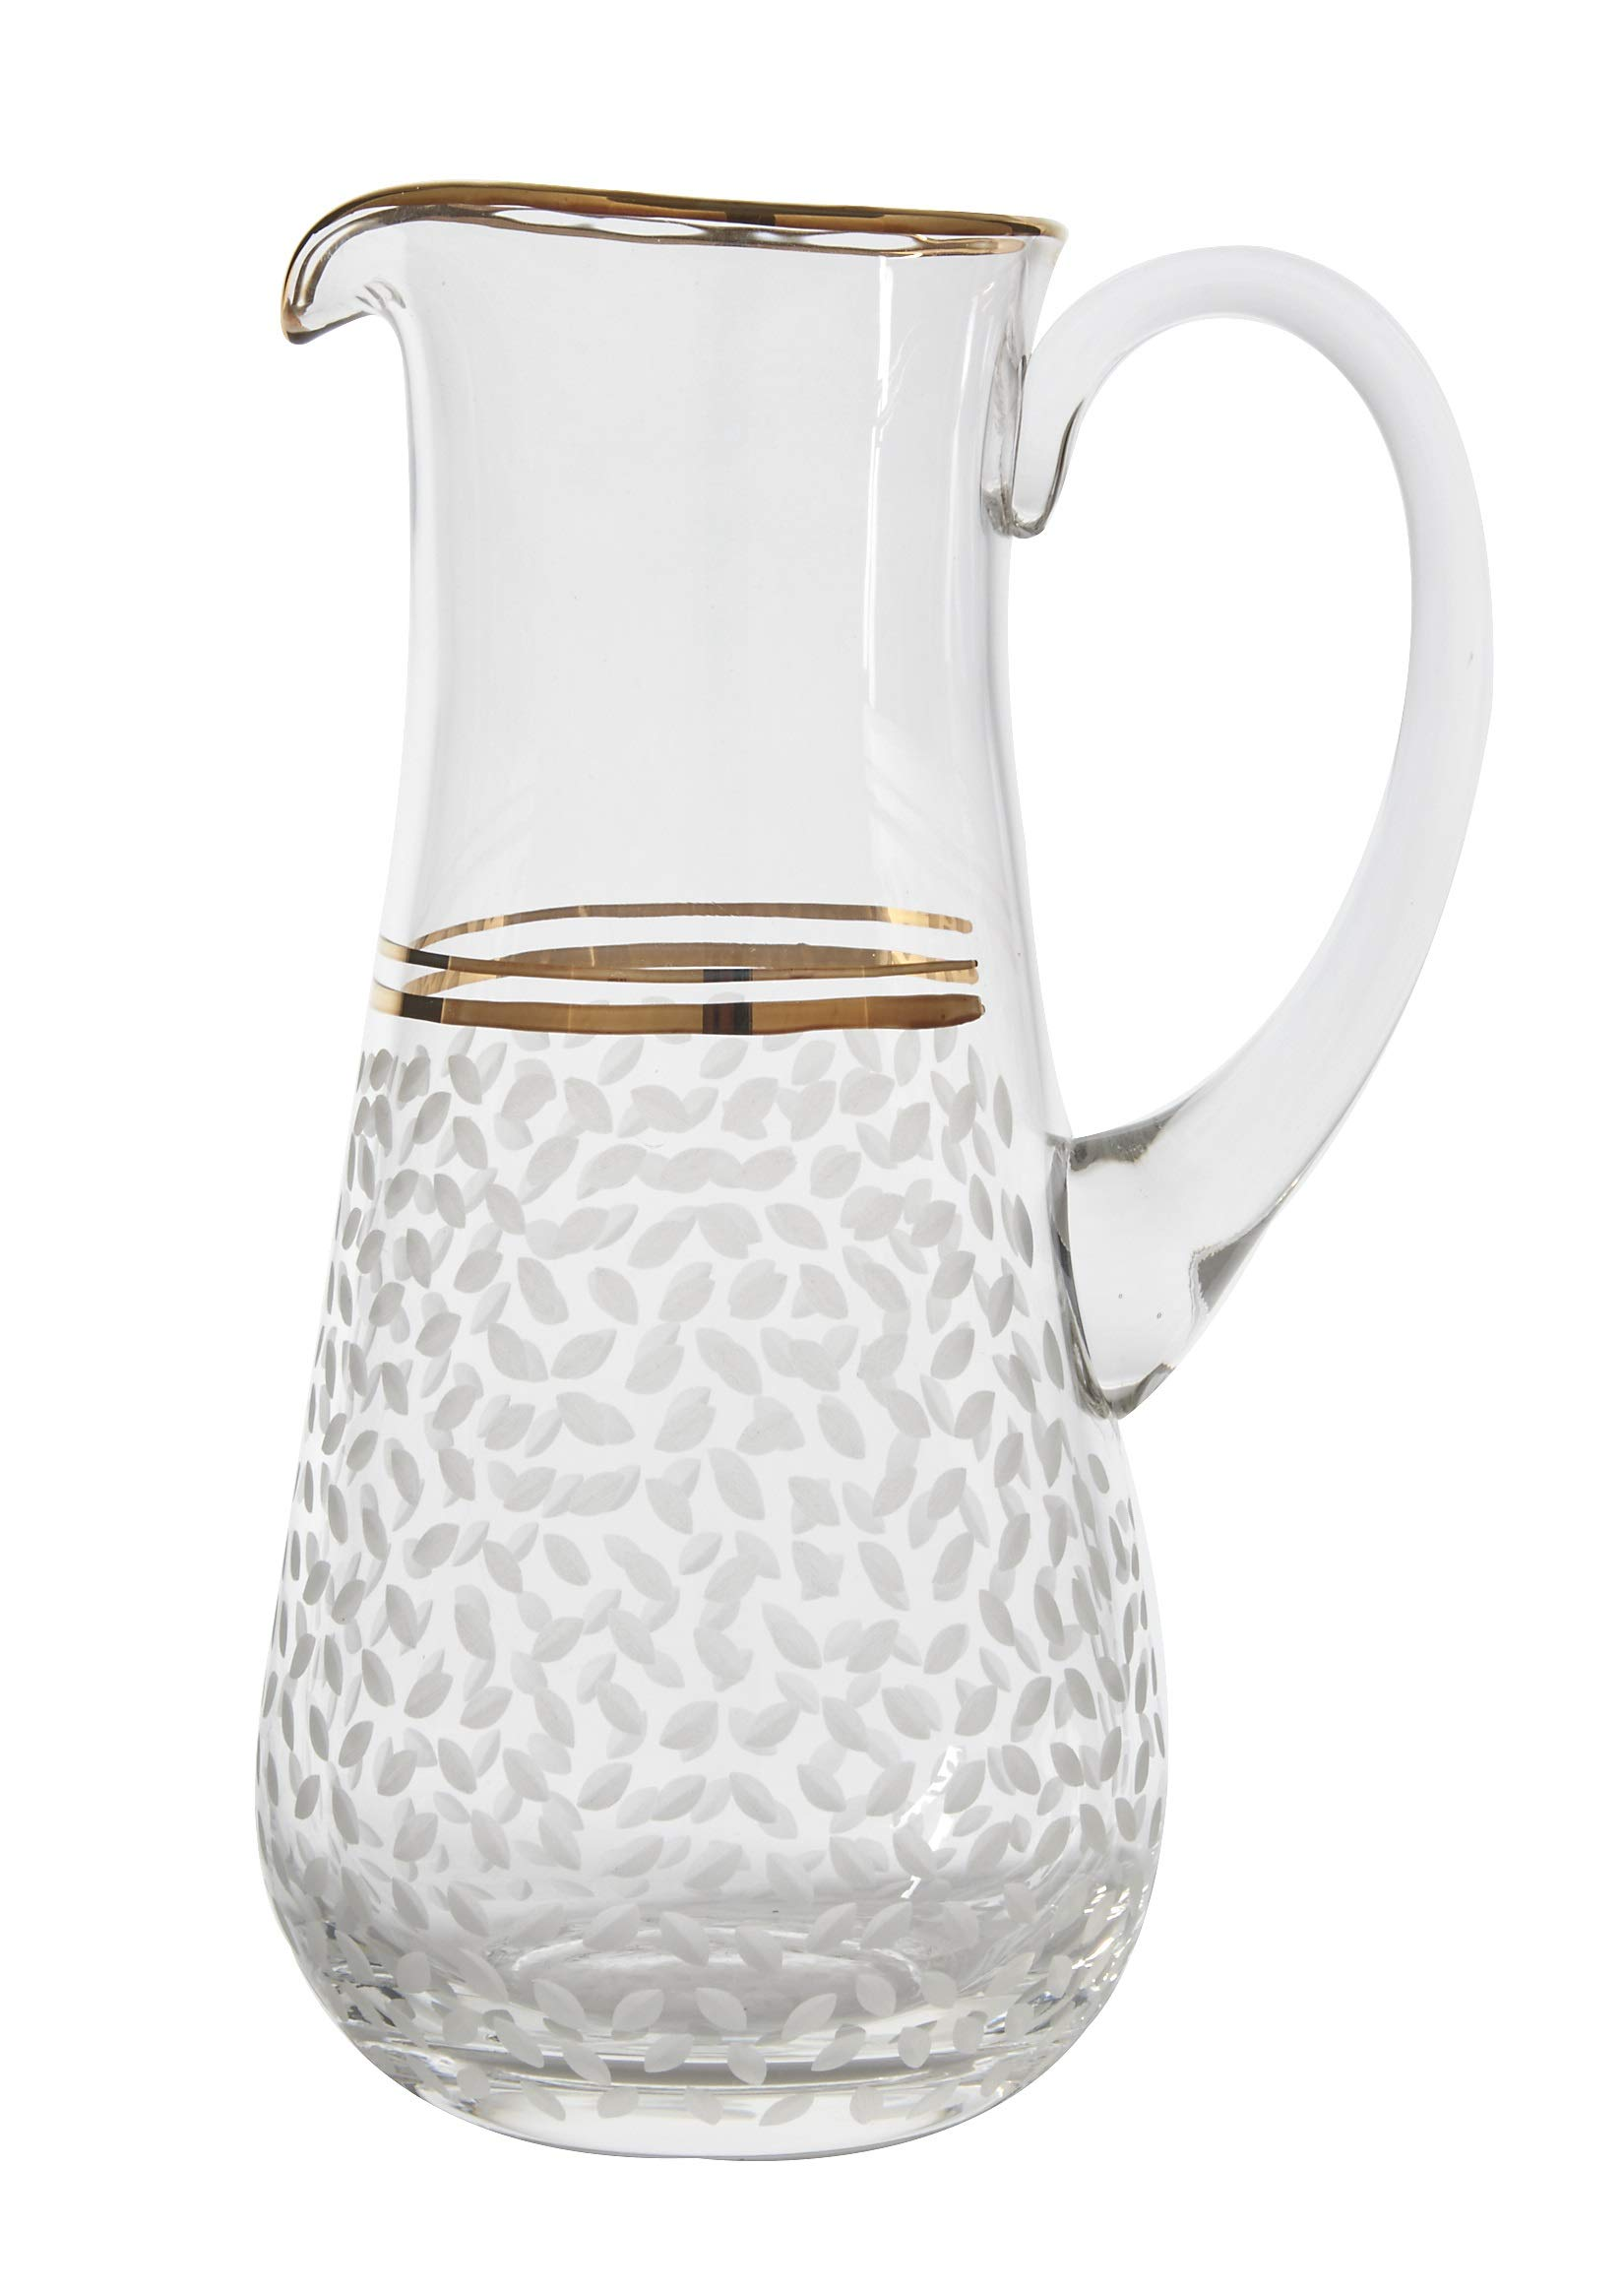 Glazze Crystal Handcrafted Water Pitcher with Hand Painted 24K Gold Trim Detailing | Hand Cut Raindrops Pattern | Ideal Wedding & Housewarming Gift | 10''H 42 oz